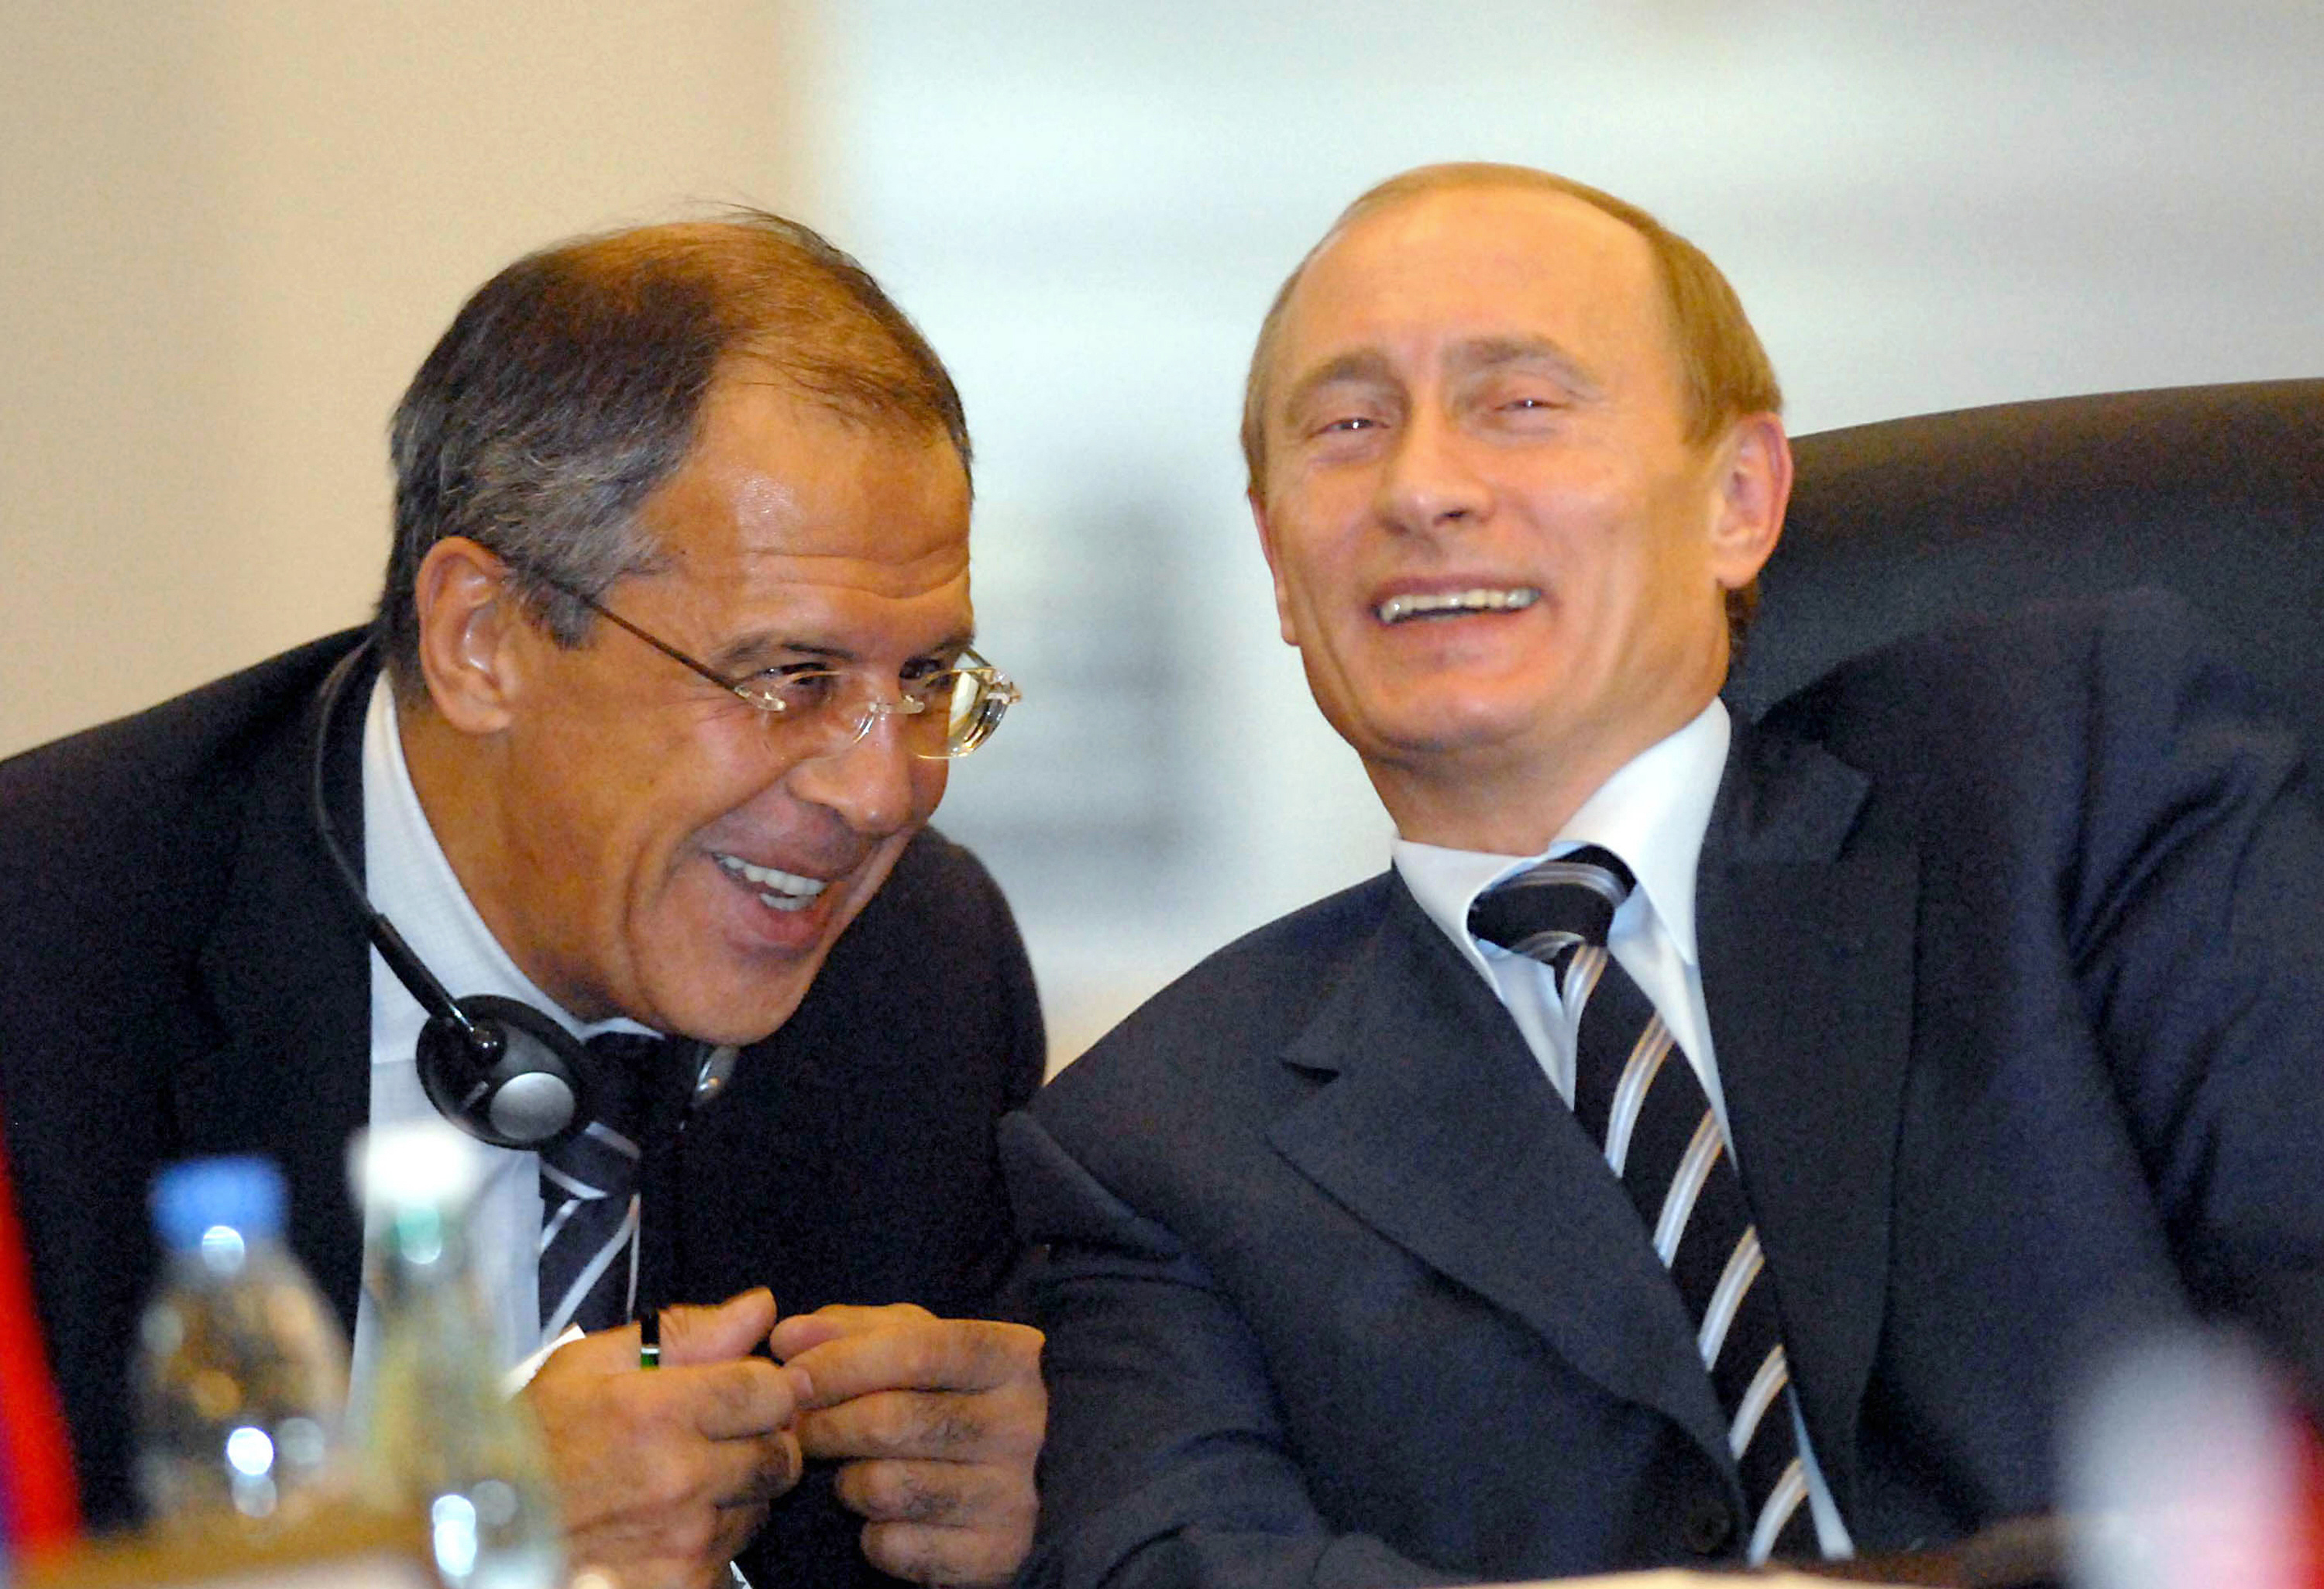 Russian President Vladimir Putin (R) shares a joke with Russia's Foreign Minister Sergei Lavrov during the Organization of the Black Sea Economic Cooperation (BSEC) summit in Istanbul, 25 June 2007. The leaders of a dozen nations in the Black Sea region, including Russia, gathered in Istanbul, 25 June 2007 under tight security to discuss ways to boost trade and economic cooperation. The summit marks the 15th anniversary of the BSEC, which promotes stability and economic ties between nations that belonged to opposite camps during the Cold War. AFP PHOTO/ANATOLIAN NEWS AGENCY/POOL (Photo credit should read ANATOLIAN NEWS AGENCY/AFP/Getty Images)